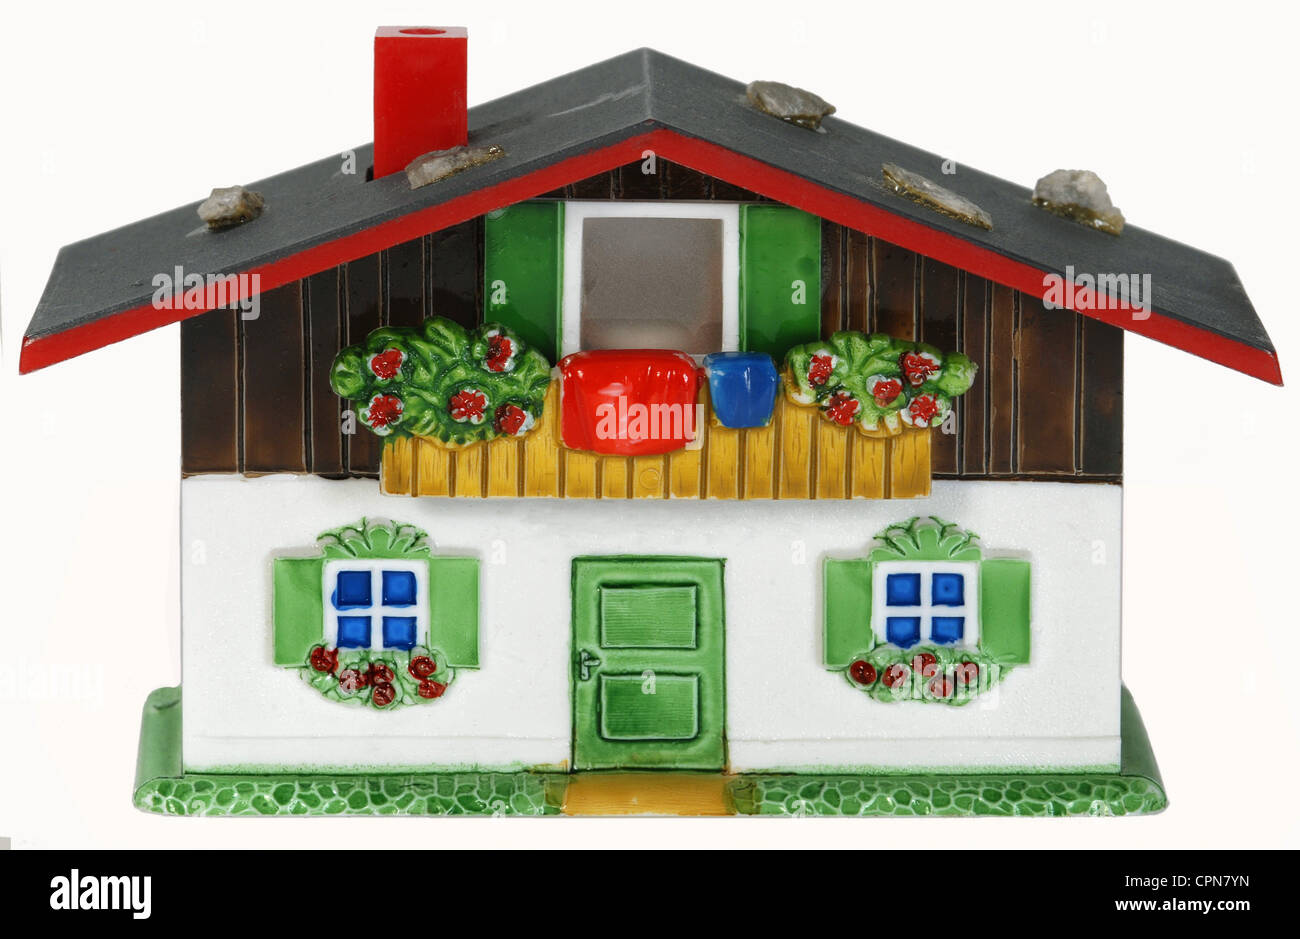 toys, lodge with slideshow function, Austria, circa 1975, Additional-Rights-Clearences-NA - Stock Image